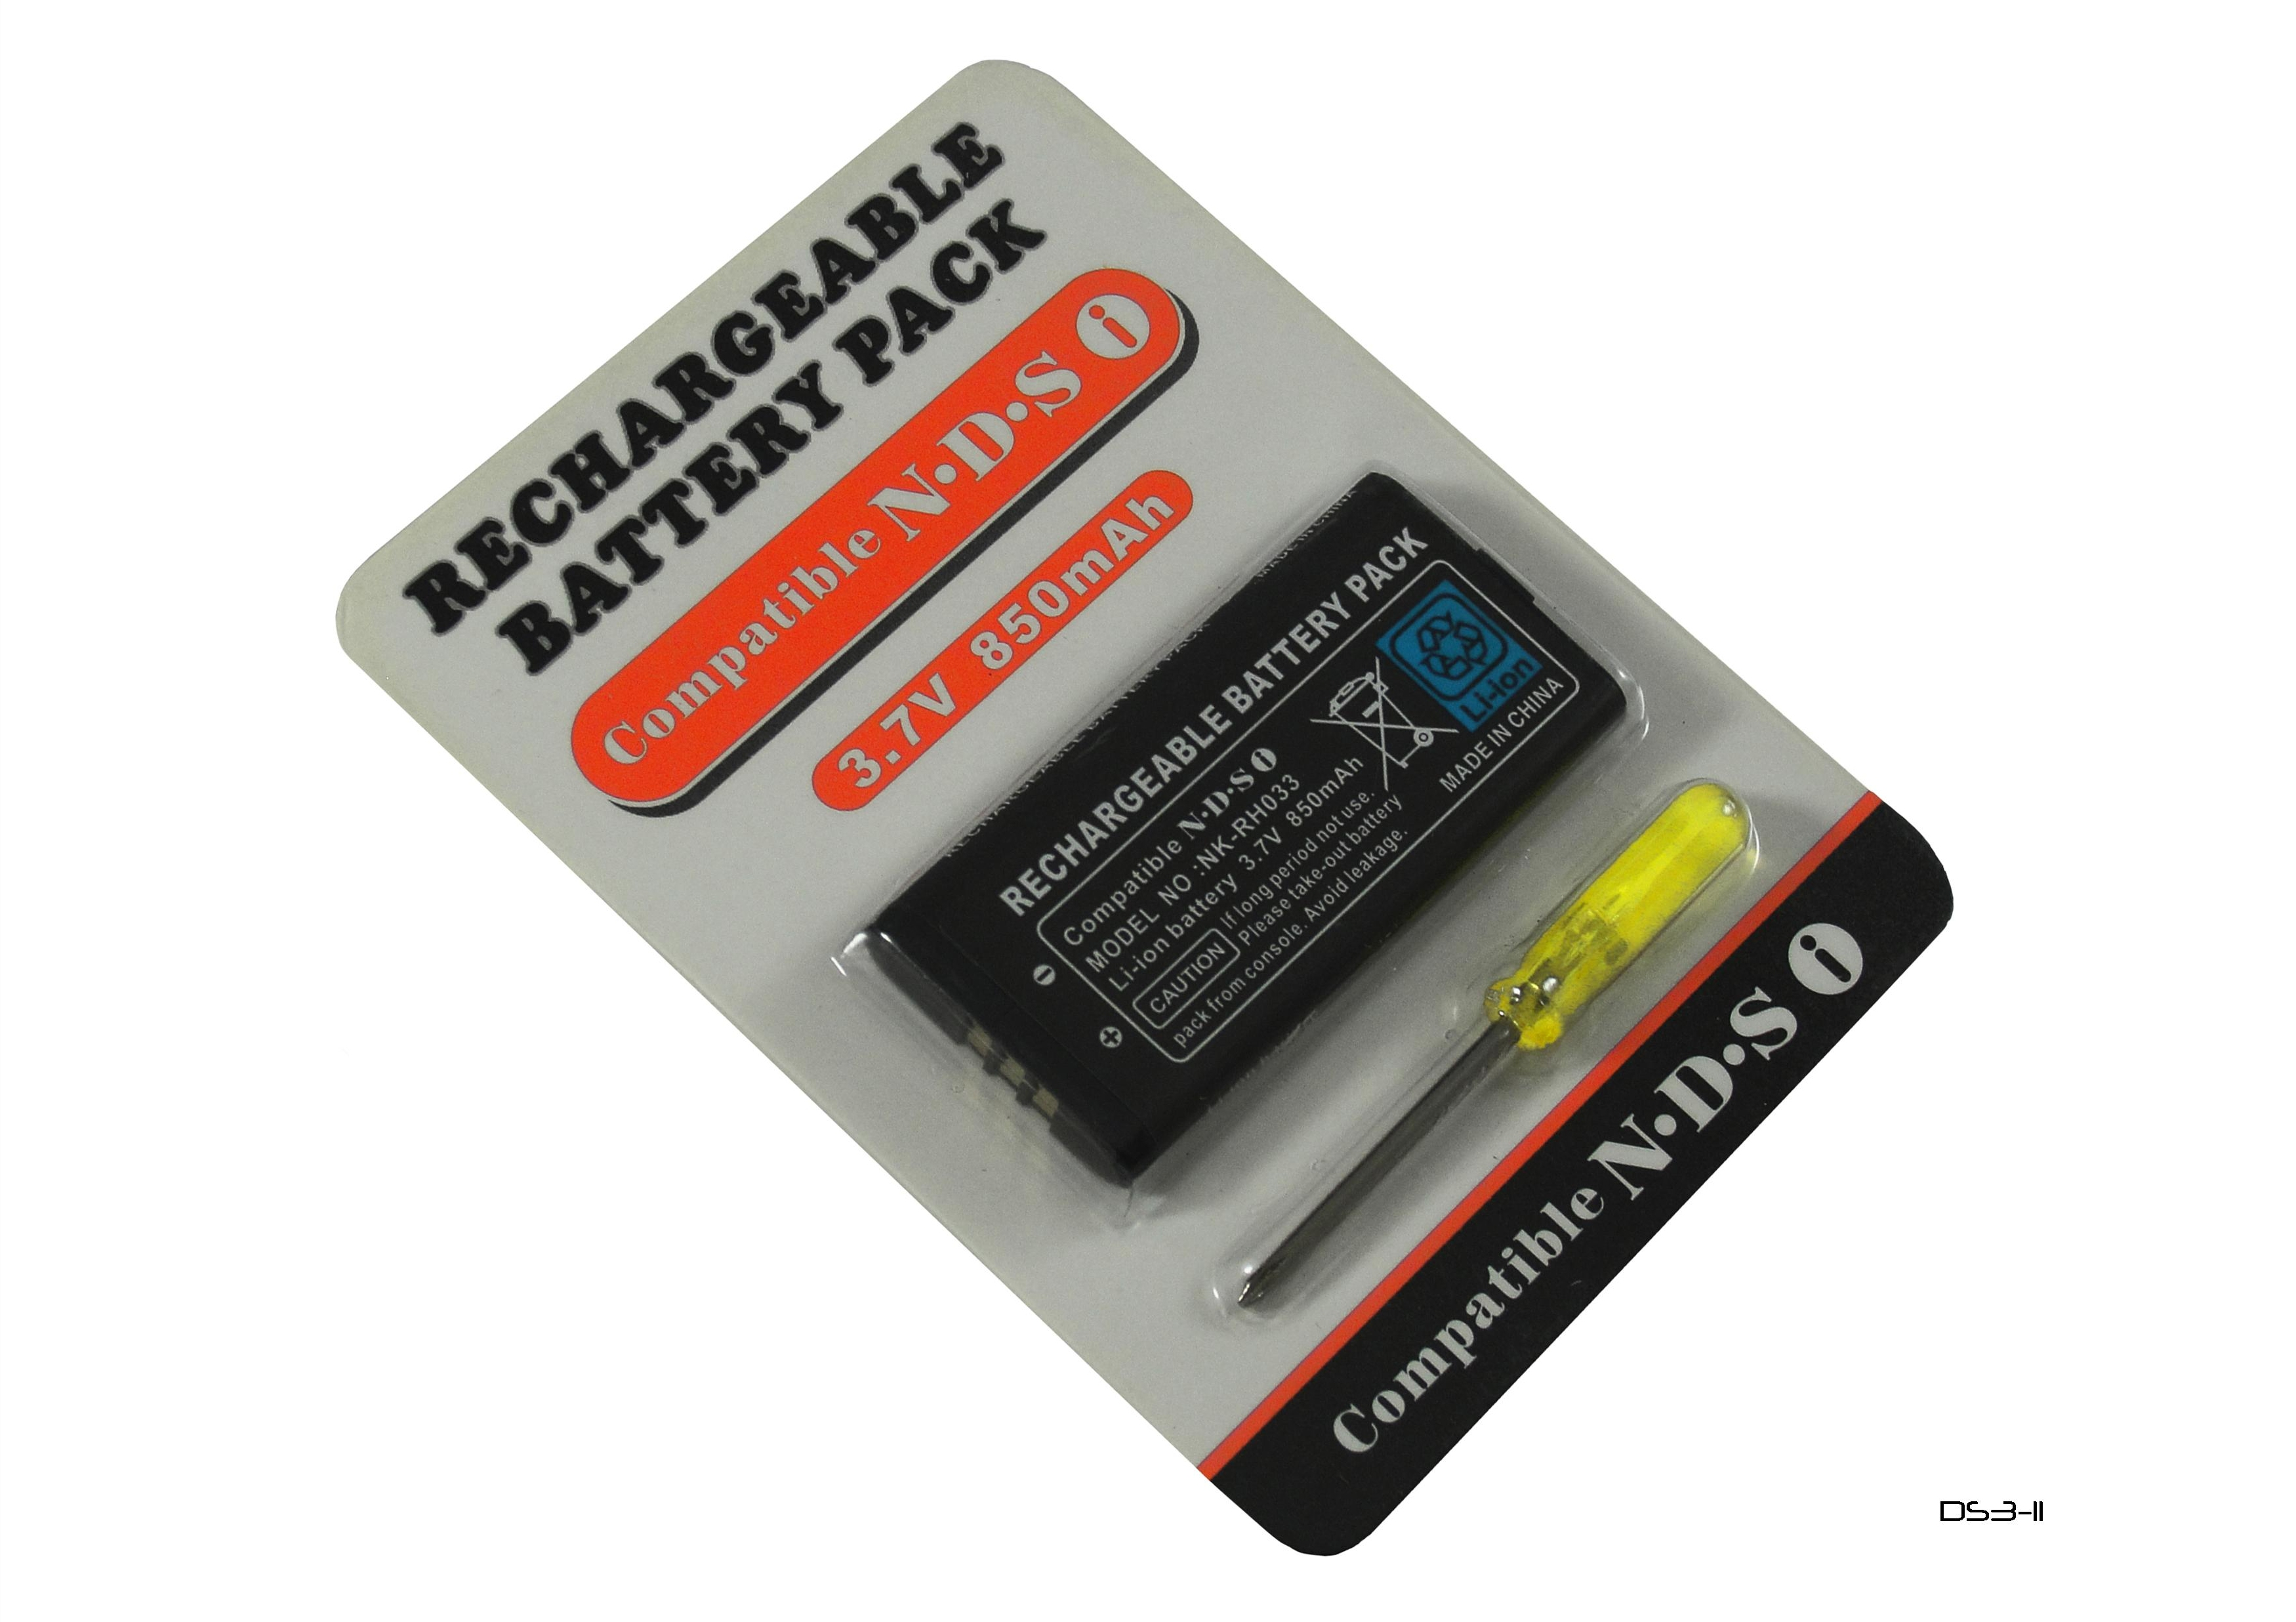 Product Photo/Replacement 850 MAH 3.7 V Li-ion Rechargeable Console Battery for Nintendo Dsi/Click to view.